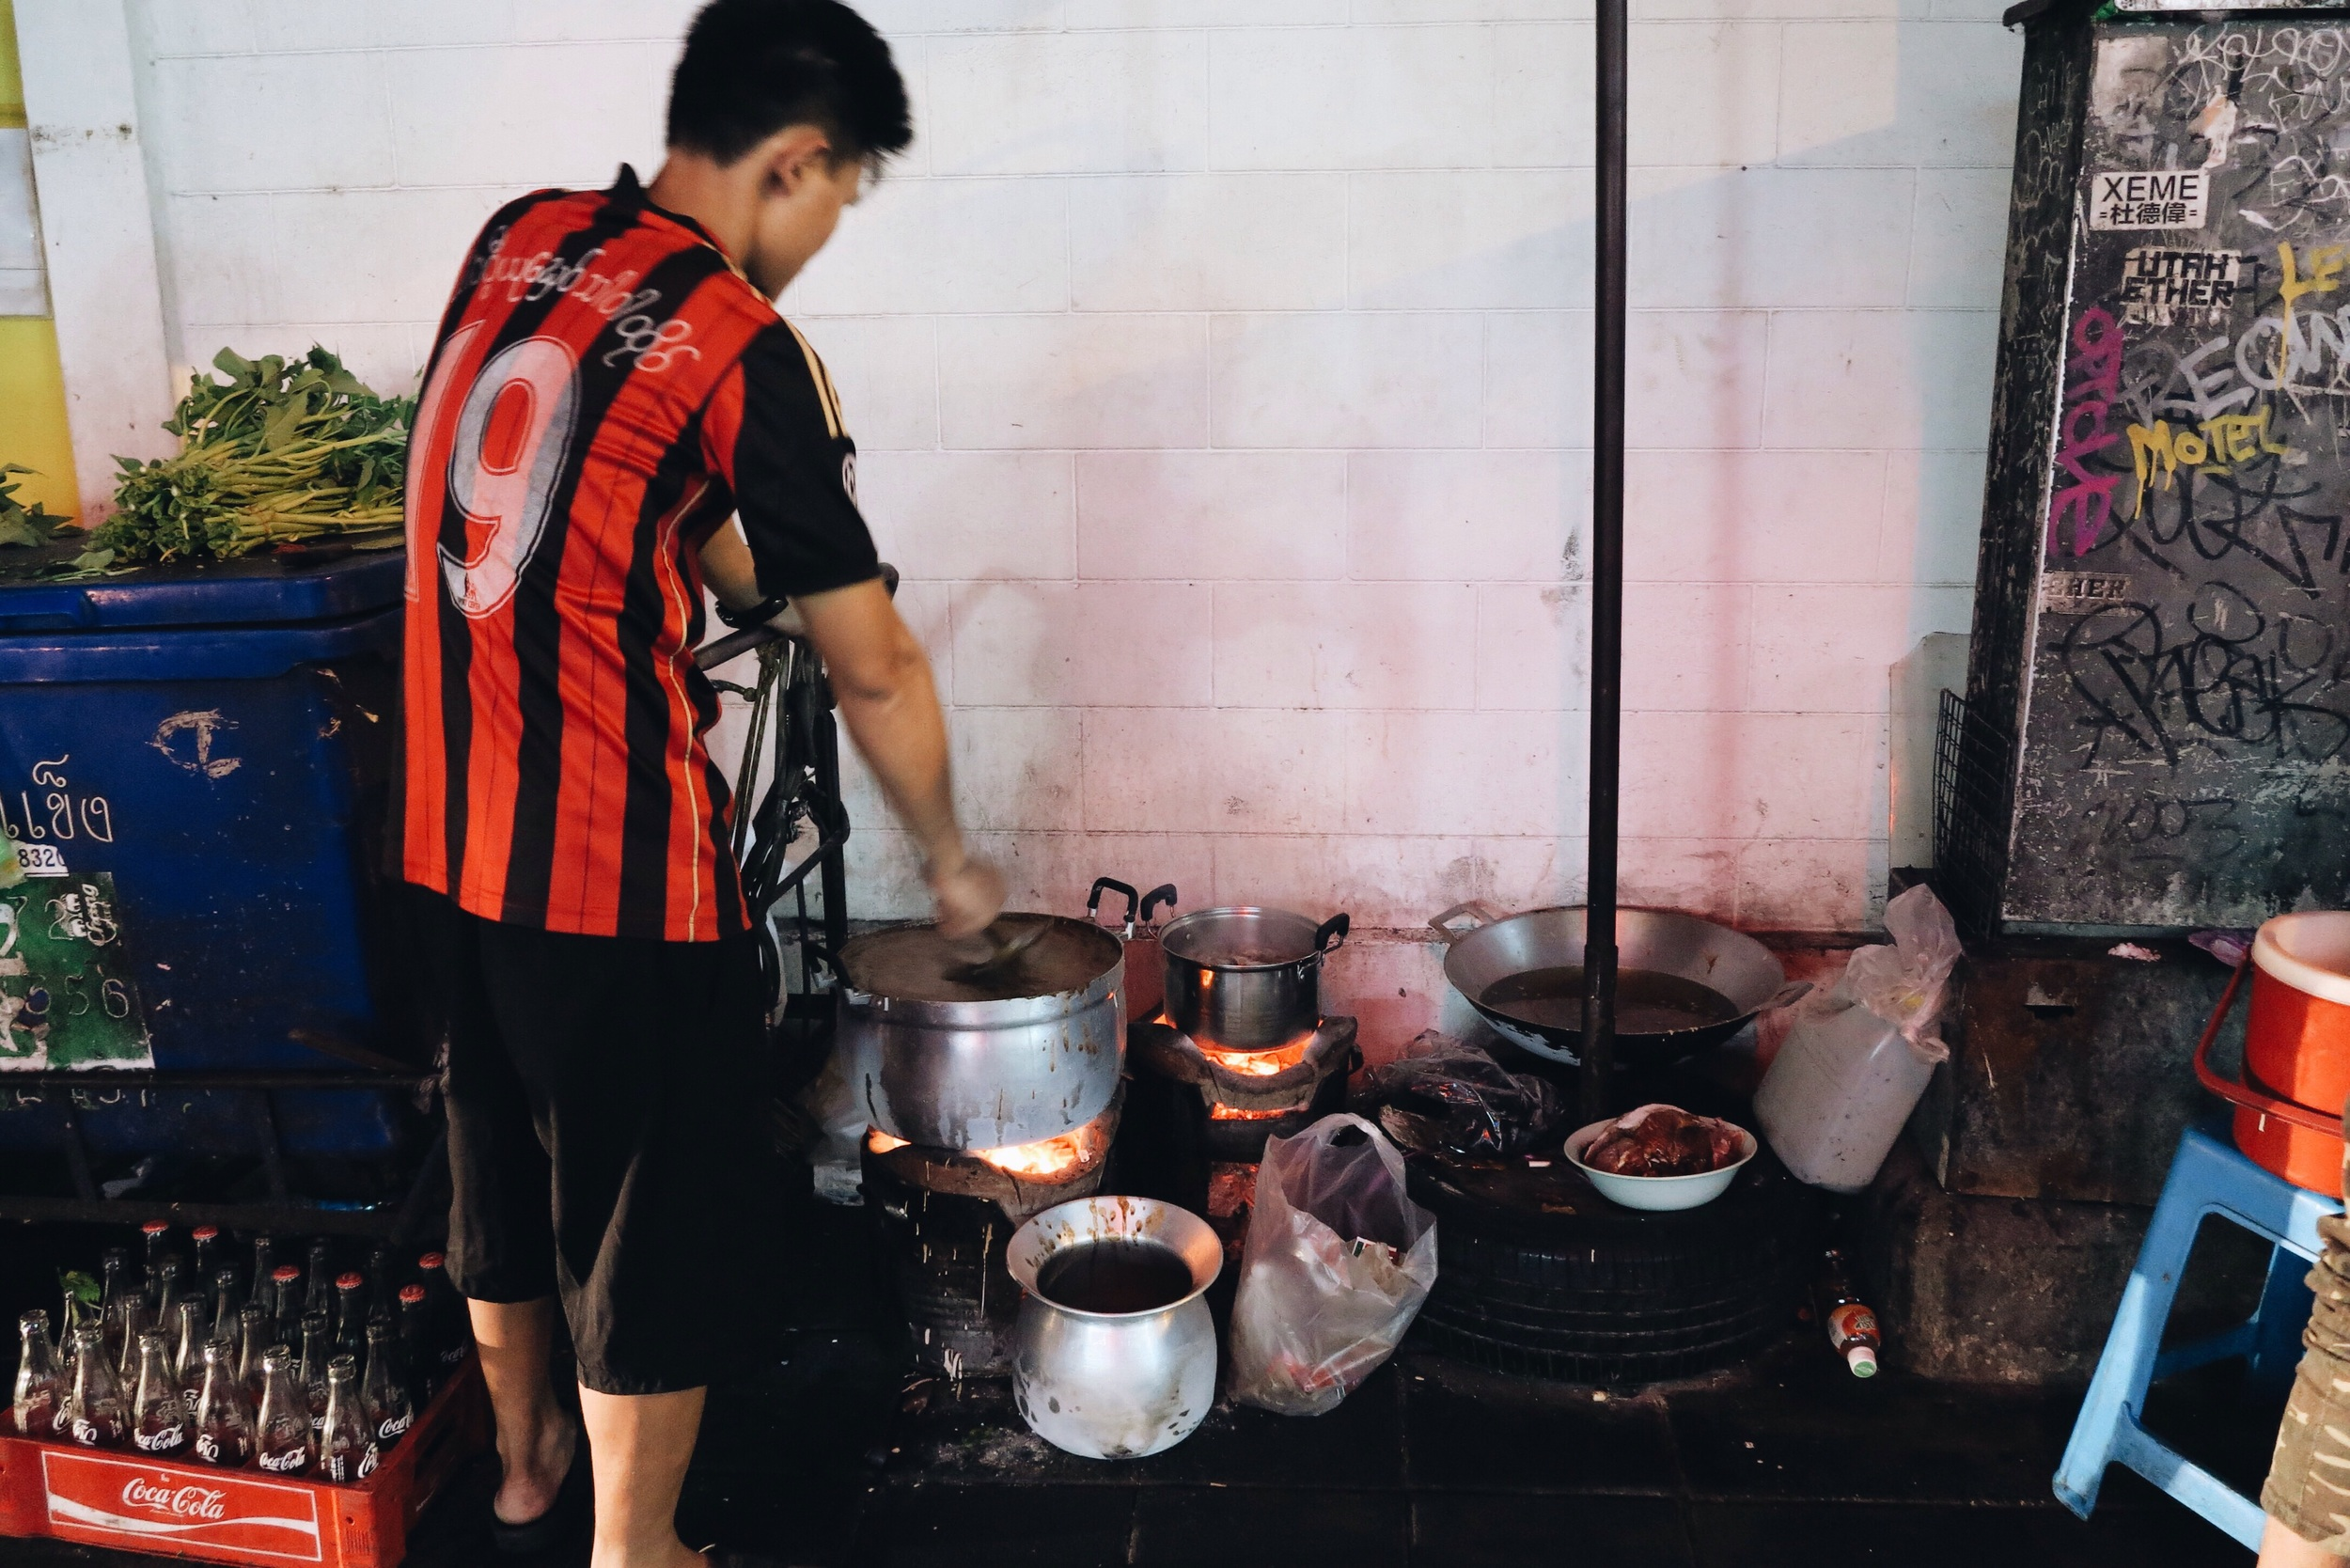 You can't get more literal than this when it comes to street food.